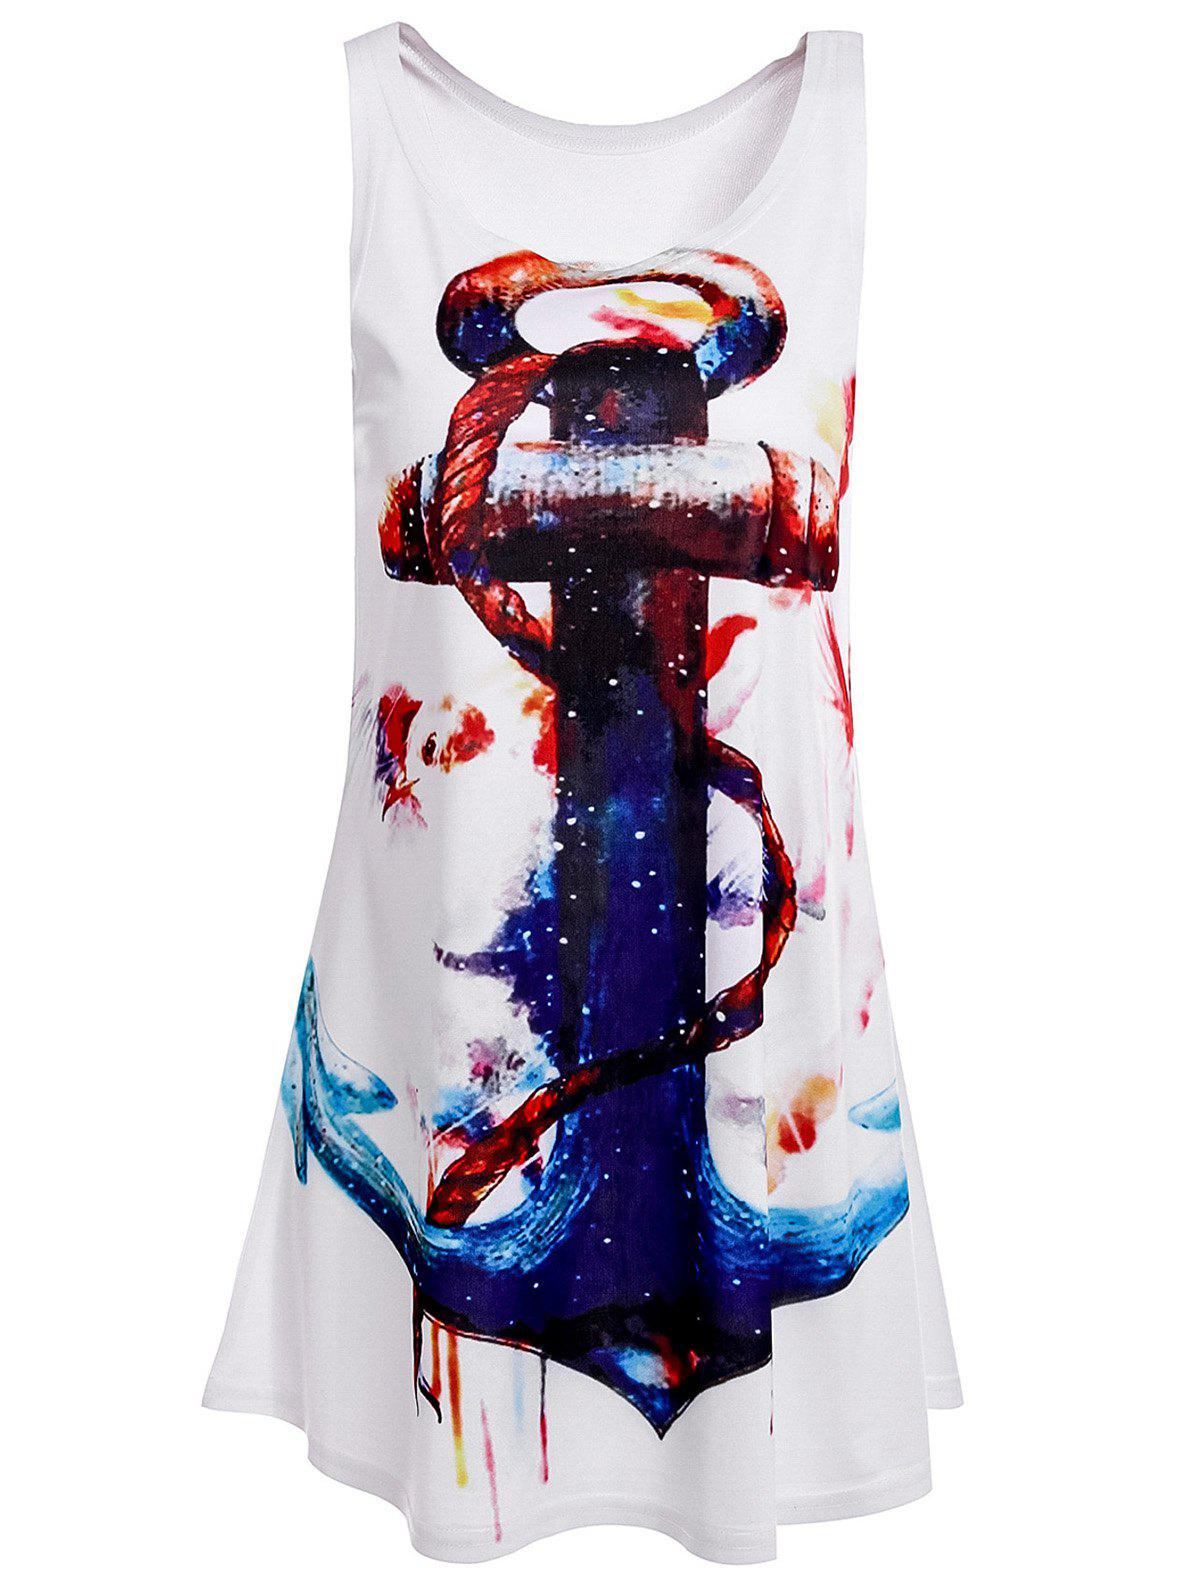 Casual Anchor Print Scoop Neck Sleeveless T-Shirt For Women